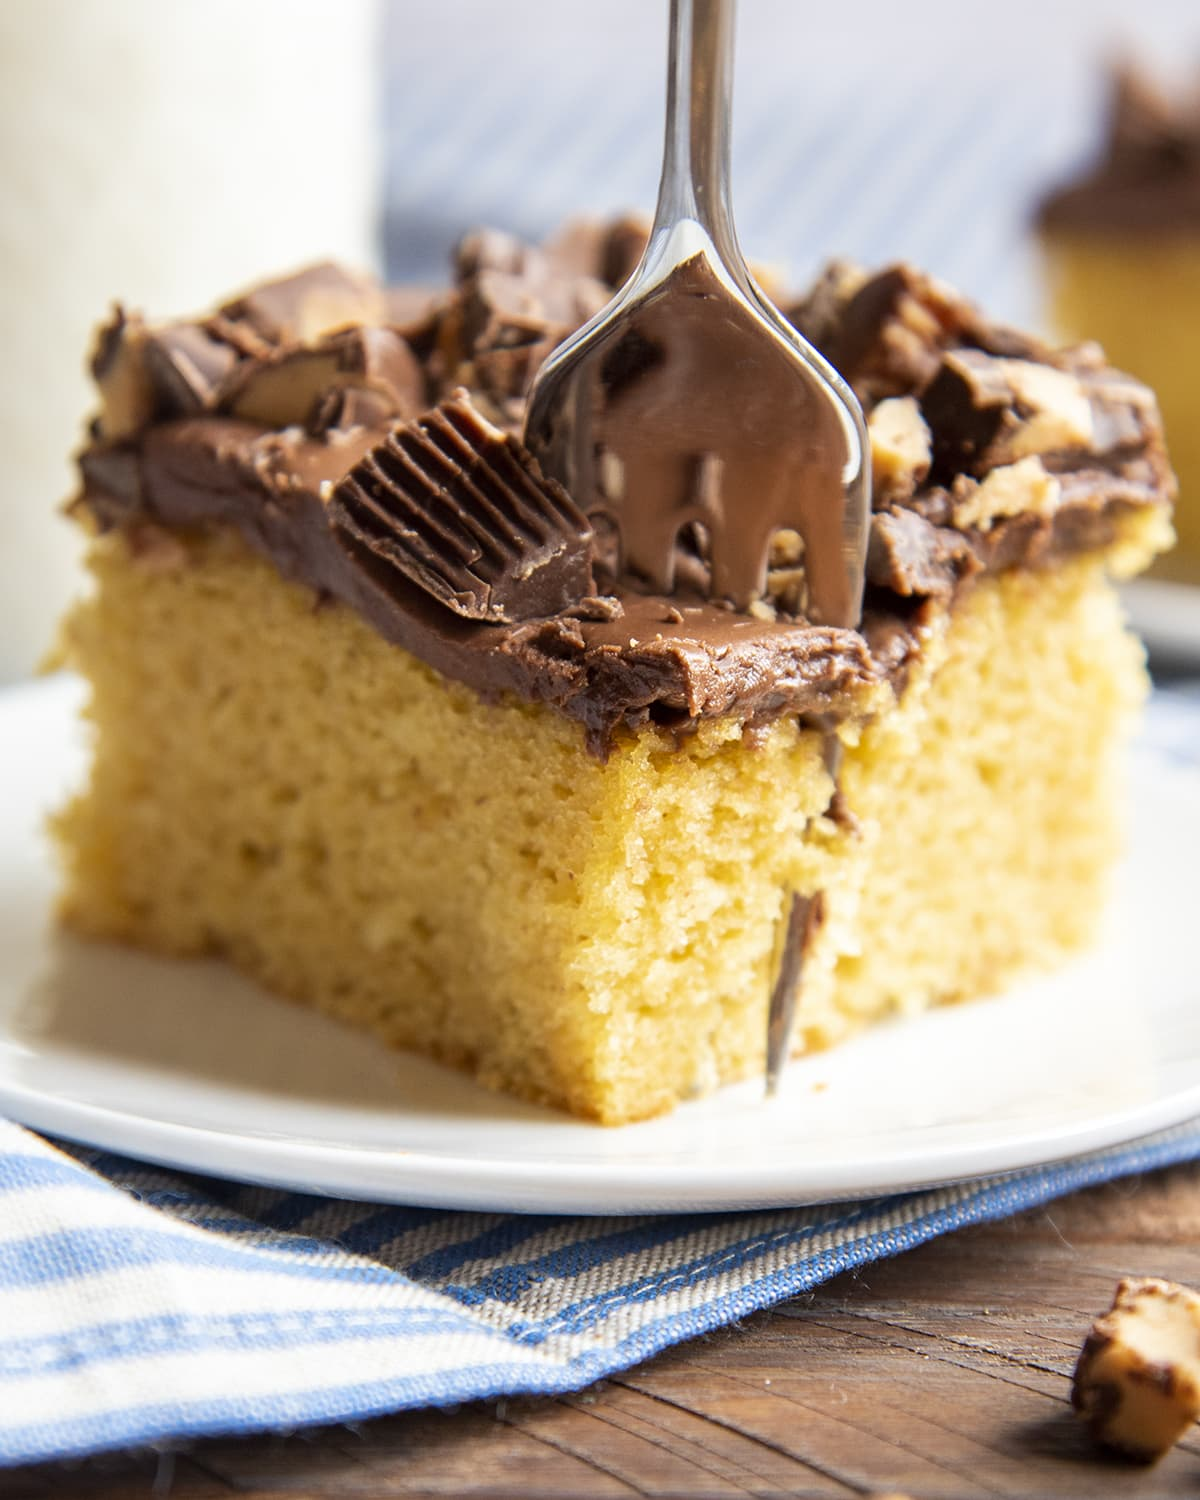 A piece of peanut butter cake with a cake mix topped with chocolate frosting and peanut butter cups. With a fork in the cake cutting out a bite.